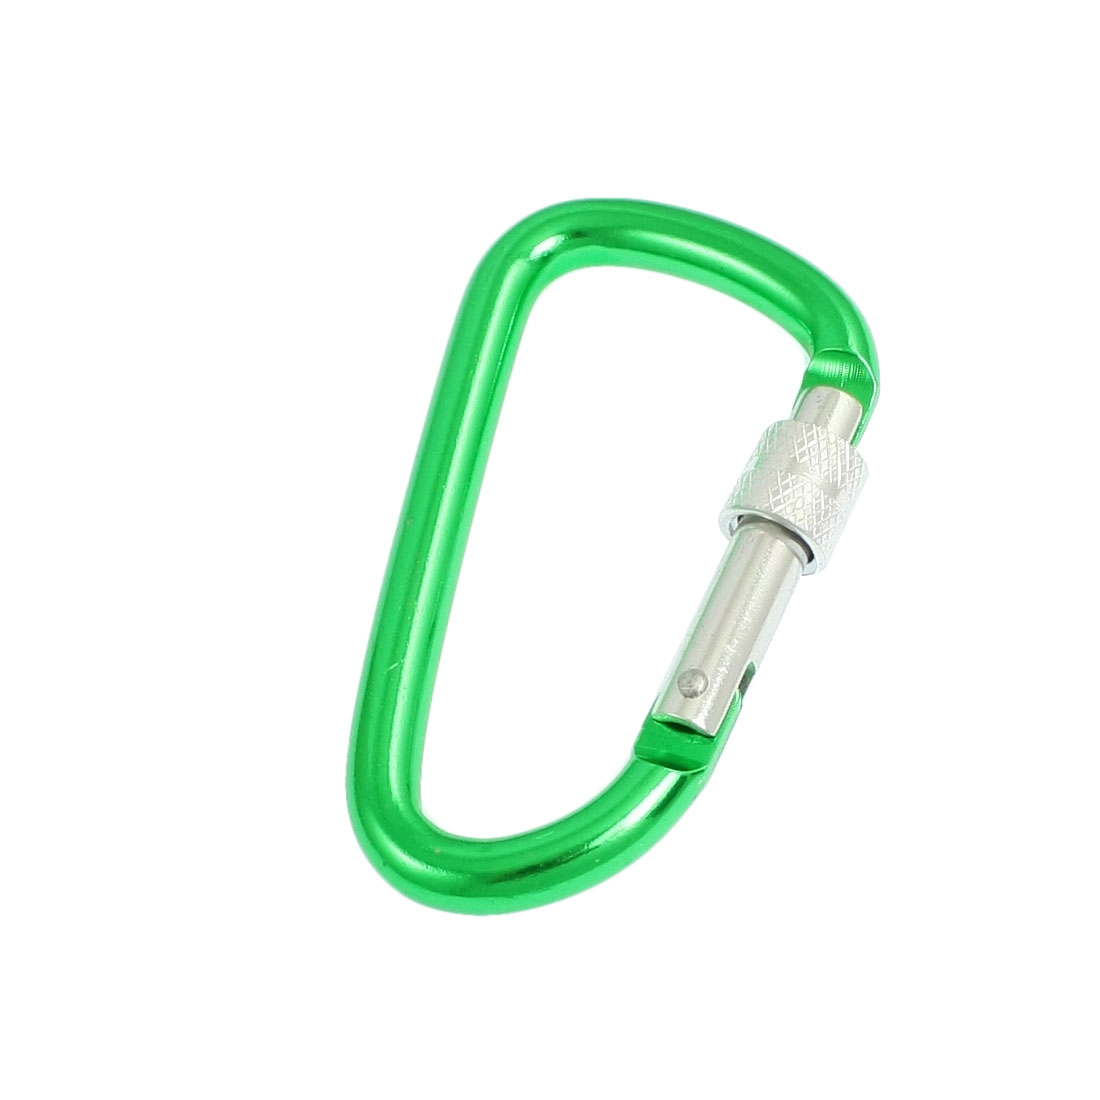 Camping Spring Loaded D Shape Green Aluminum Alloy Locking Carabiner